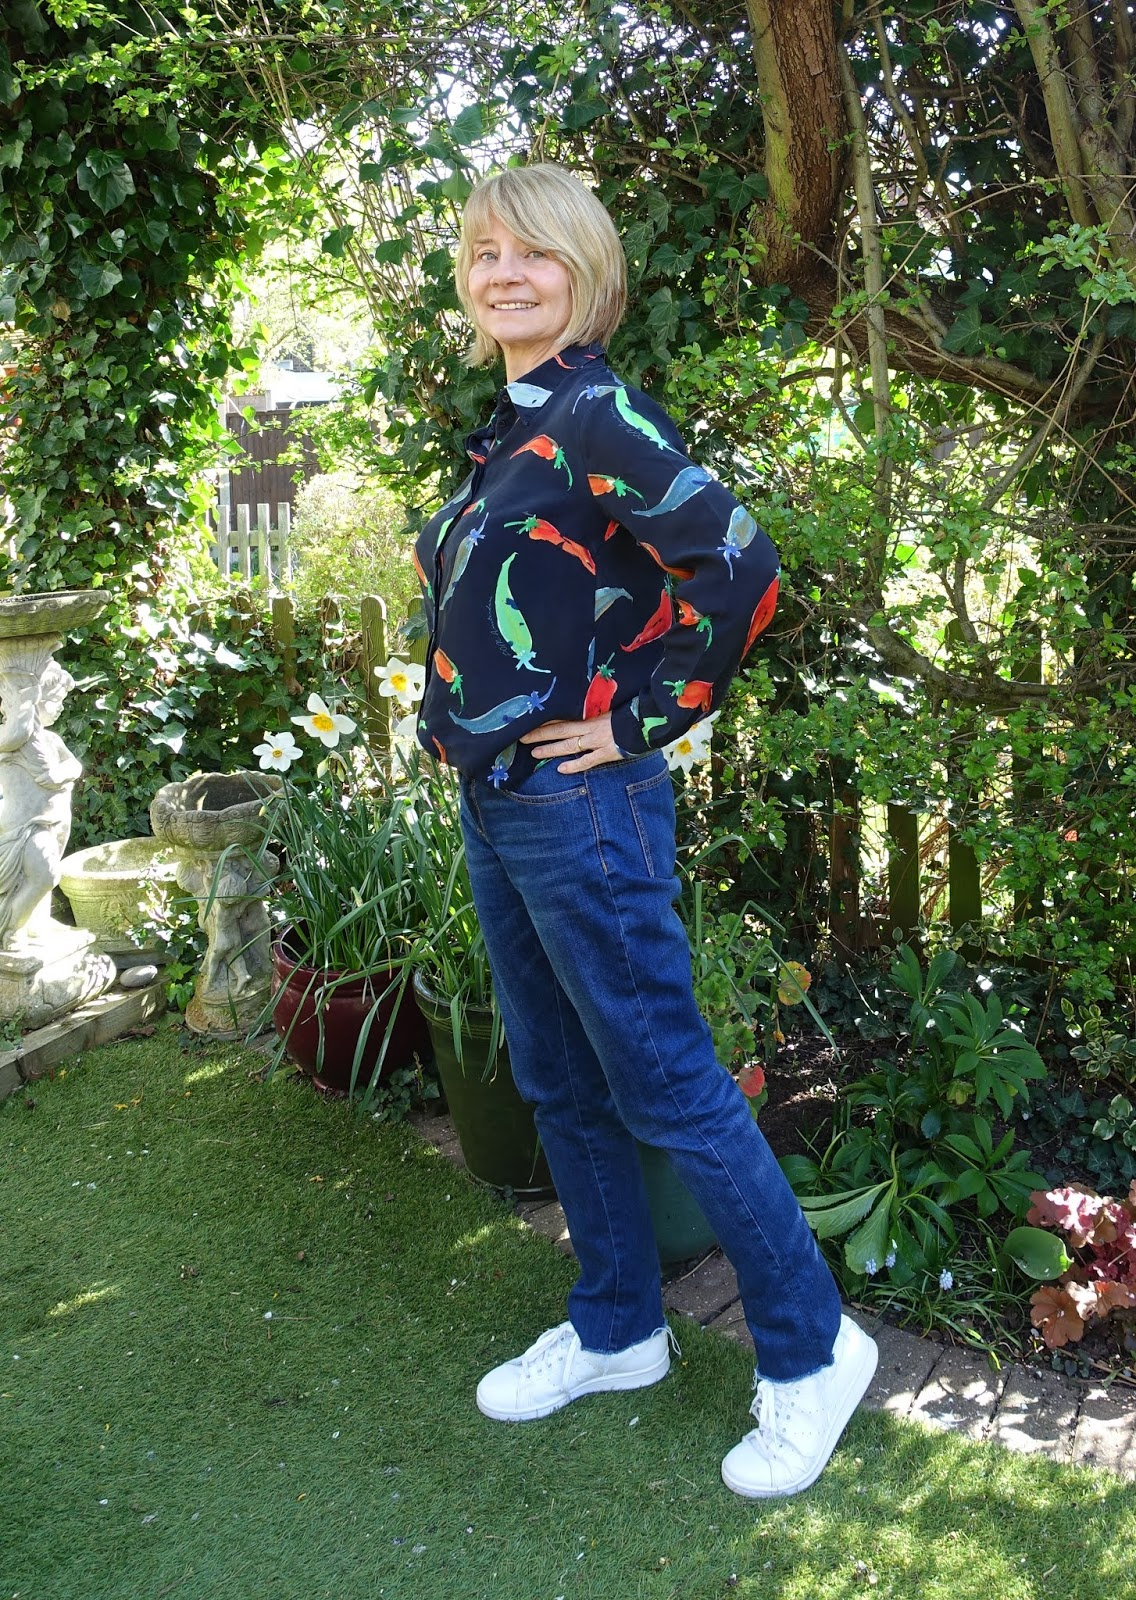 Is This Mutton's Gail Hanlon in casual but smart outfit: blue jeans and patterned shirt from The Bias Cut